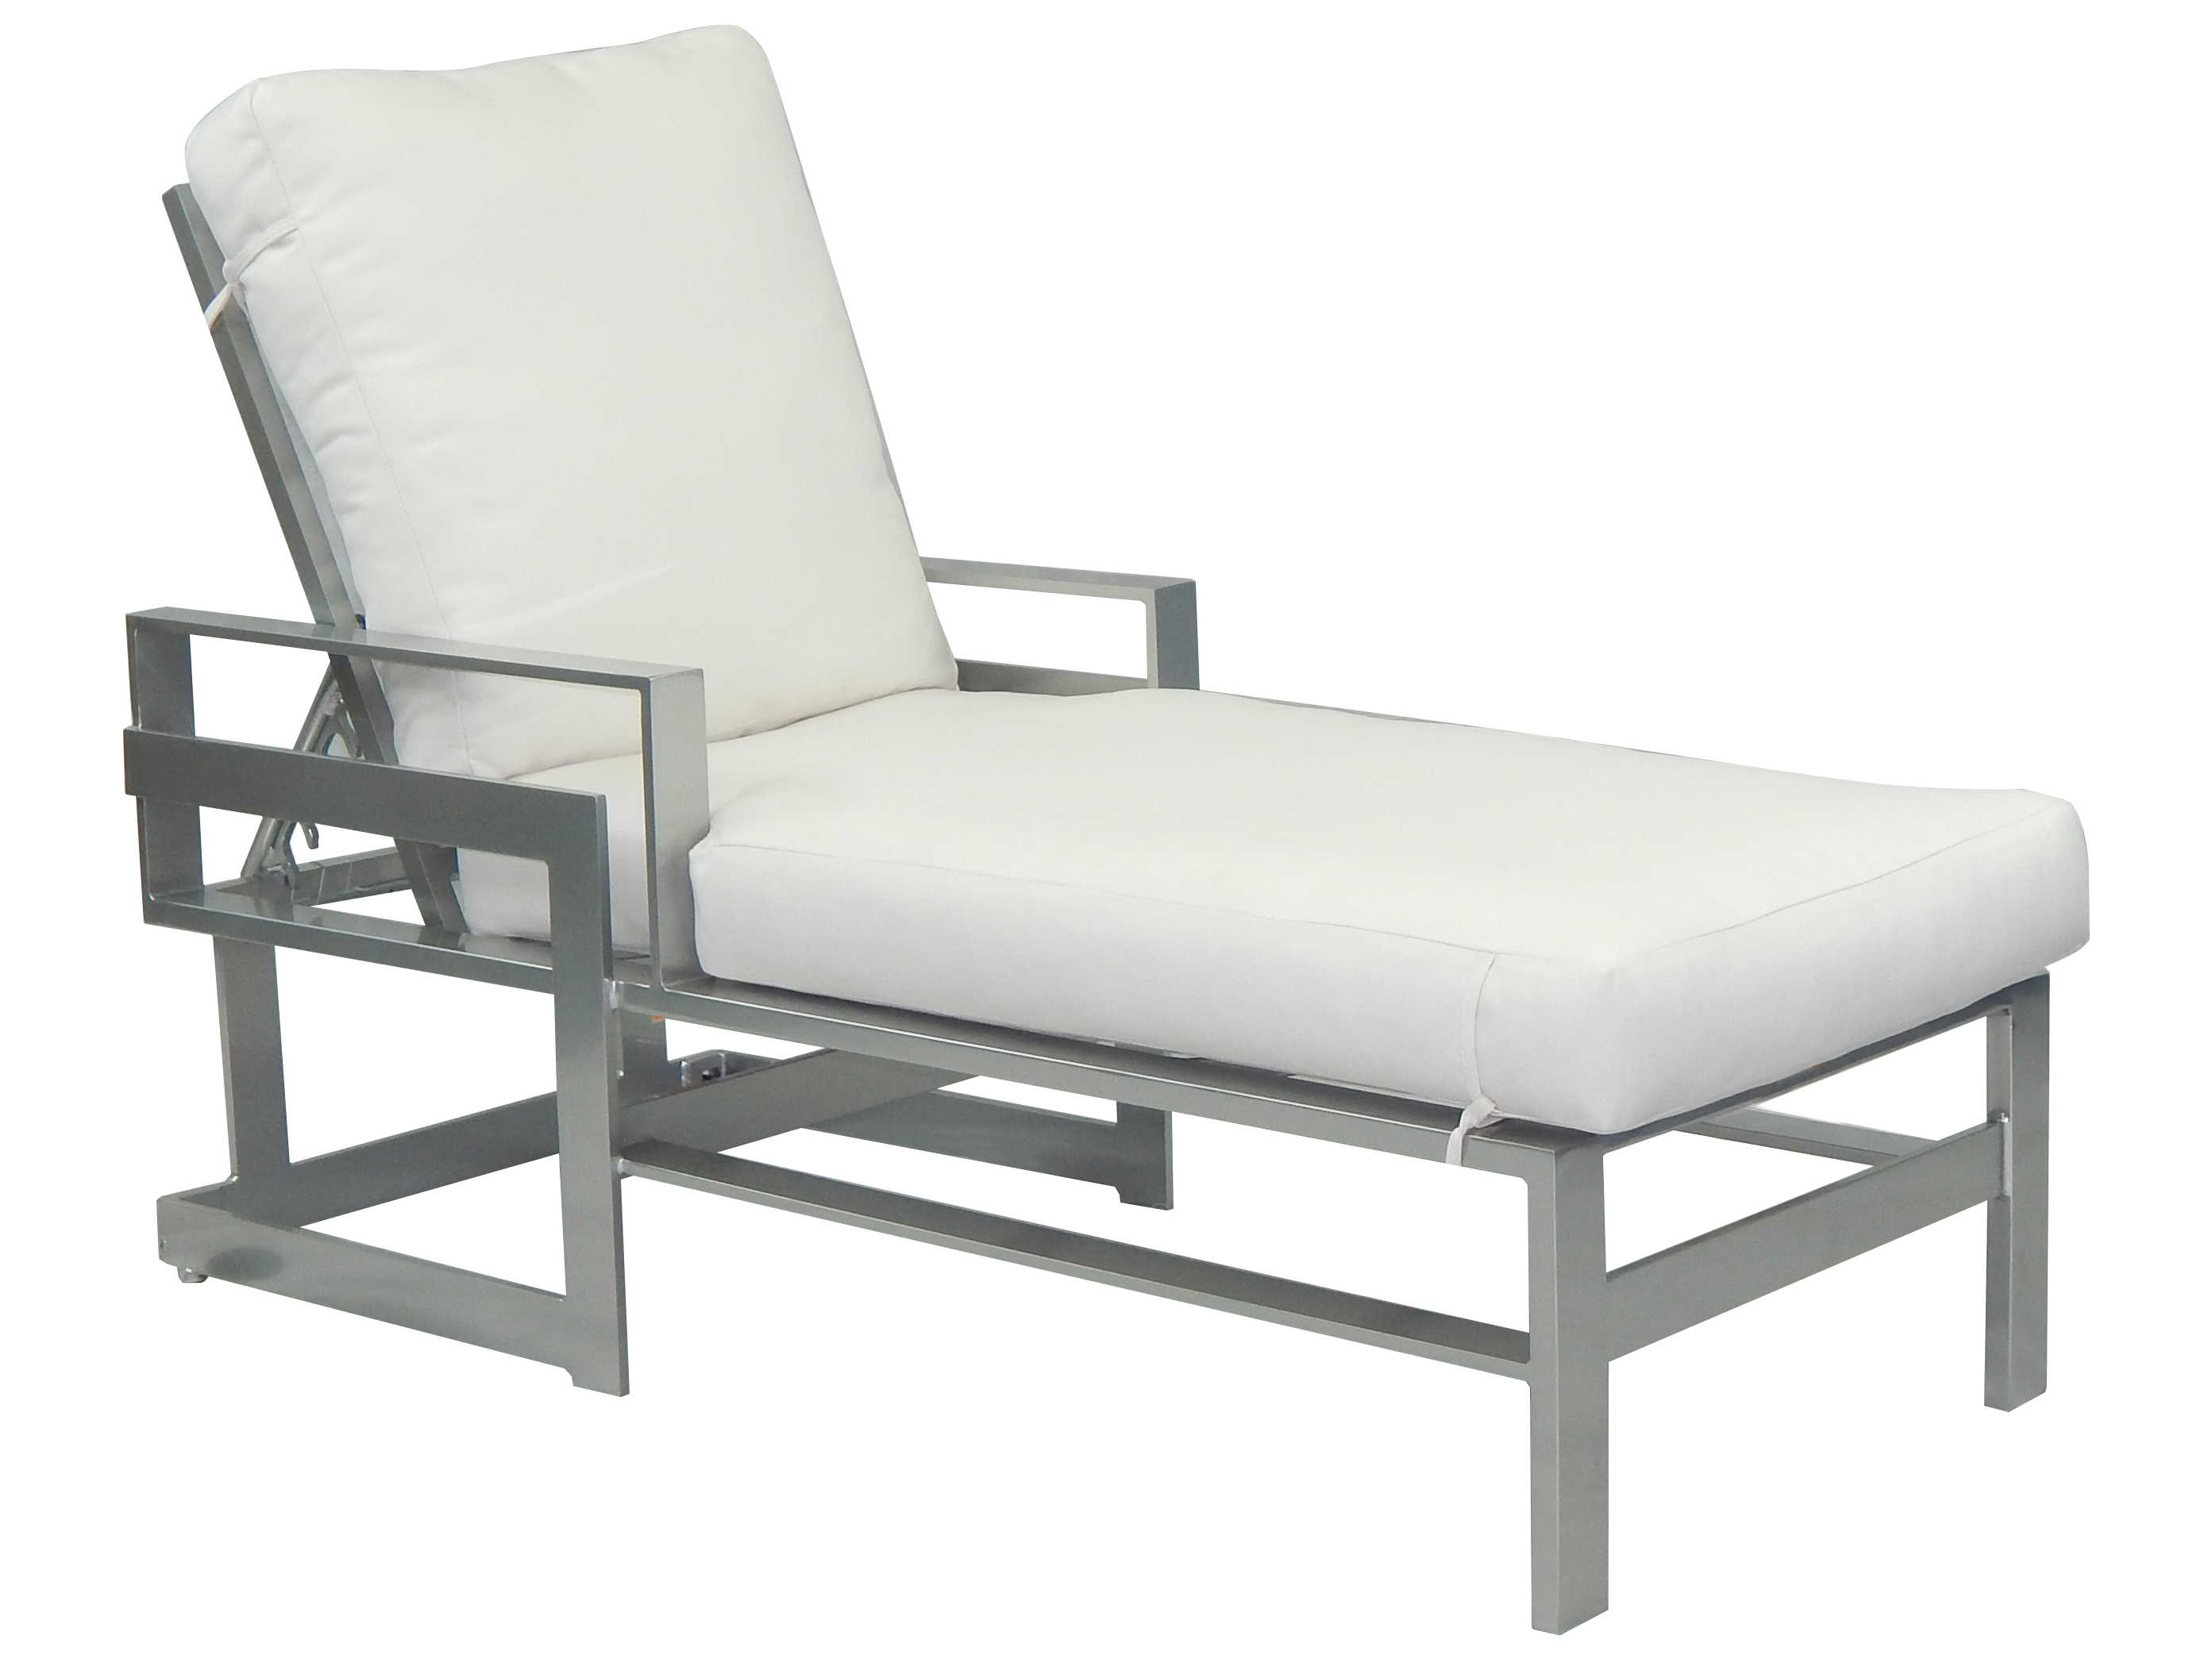 Castelle eclipse cushion dining cast aluminum adjustable for Chaise lounge aluminum